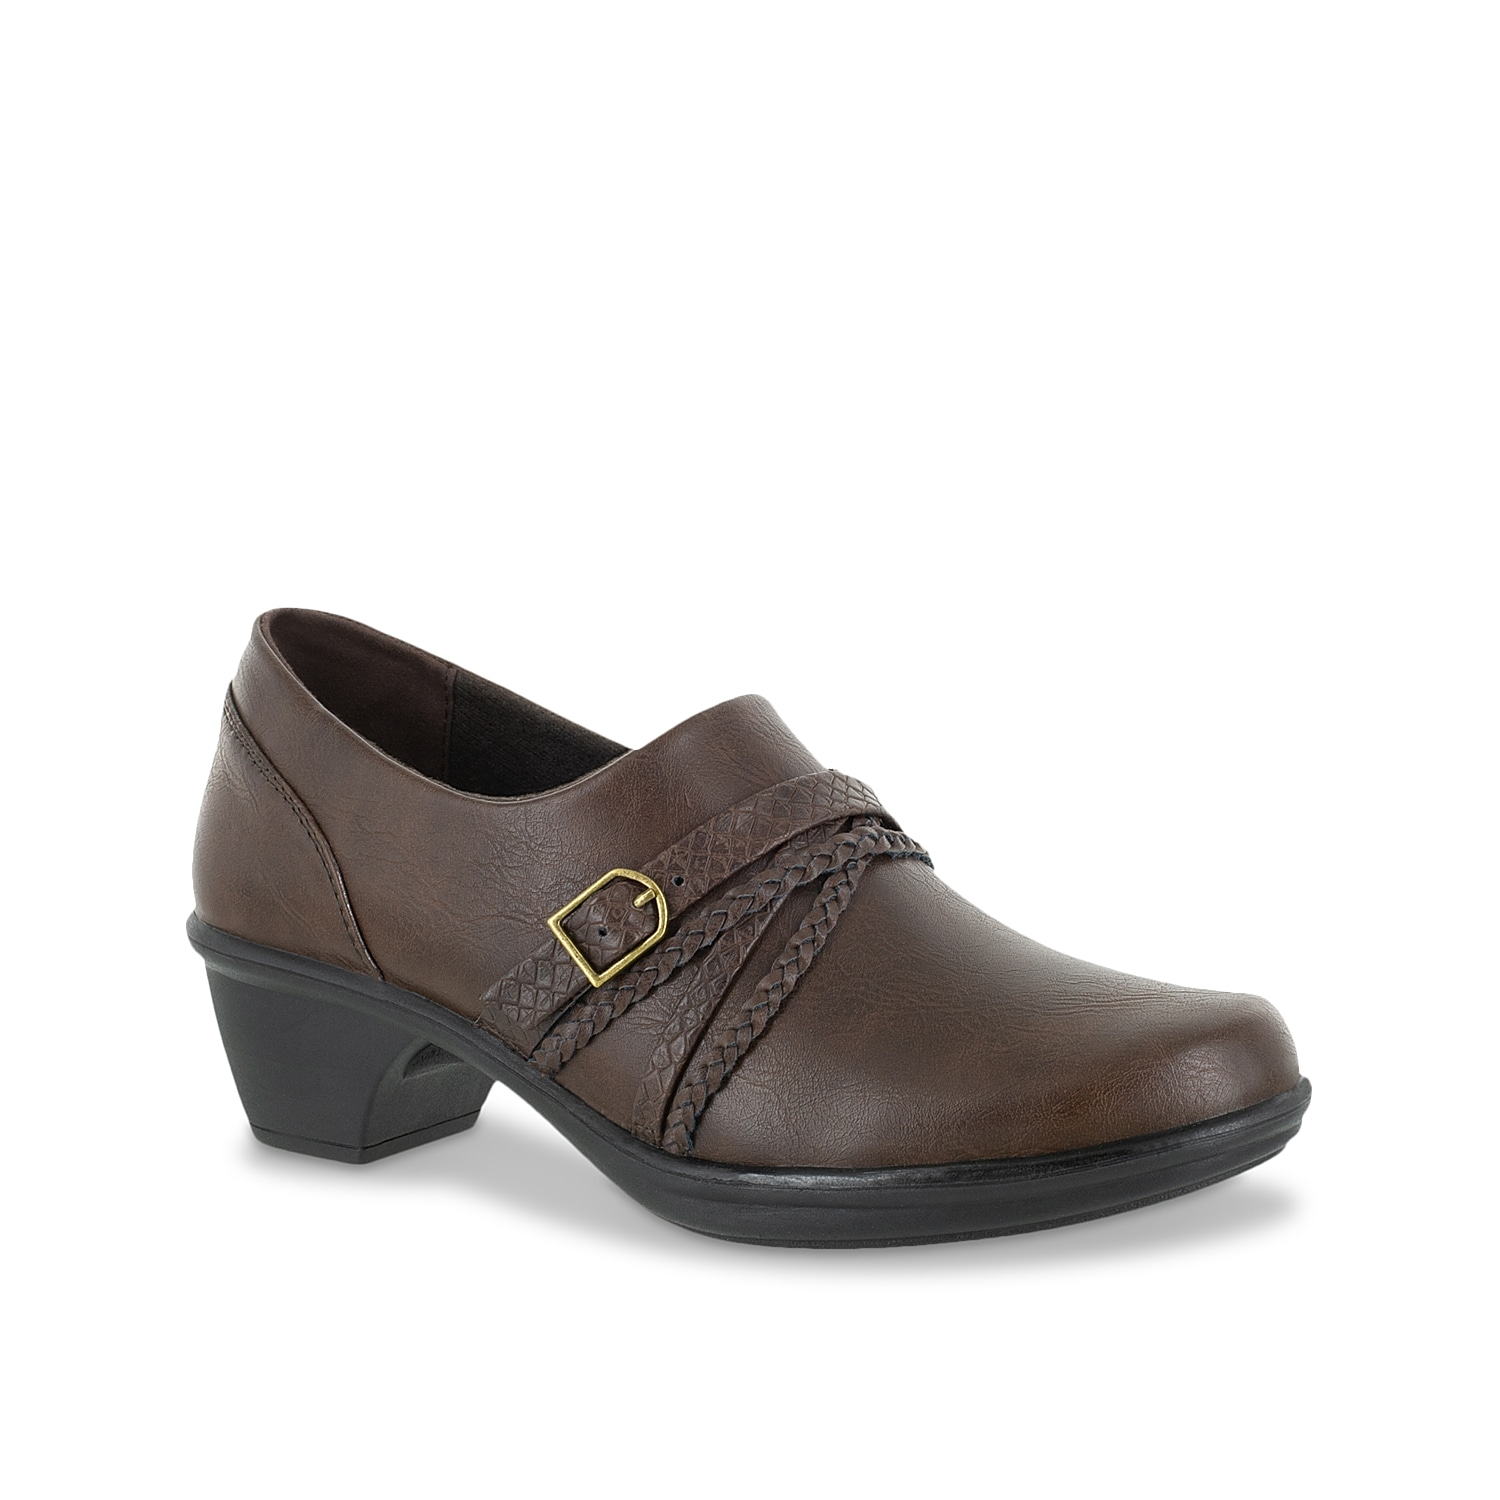 Comfort and style go a long way with the Titan bootie from Easy Street. This slip-on pair is fashioned with multiple braided straps and a removable insole for cushioned steps!